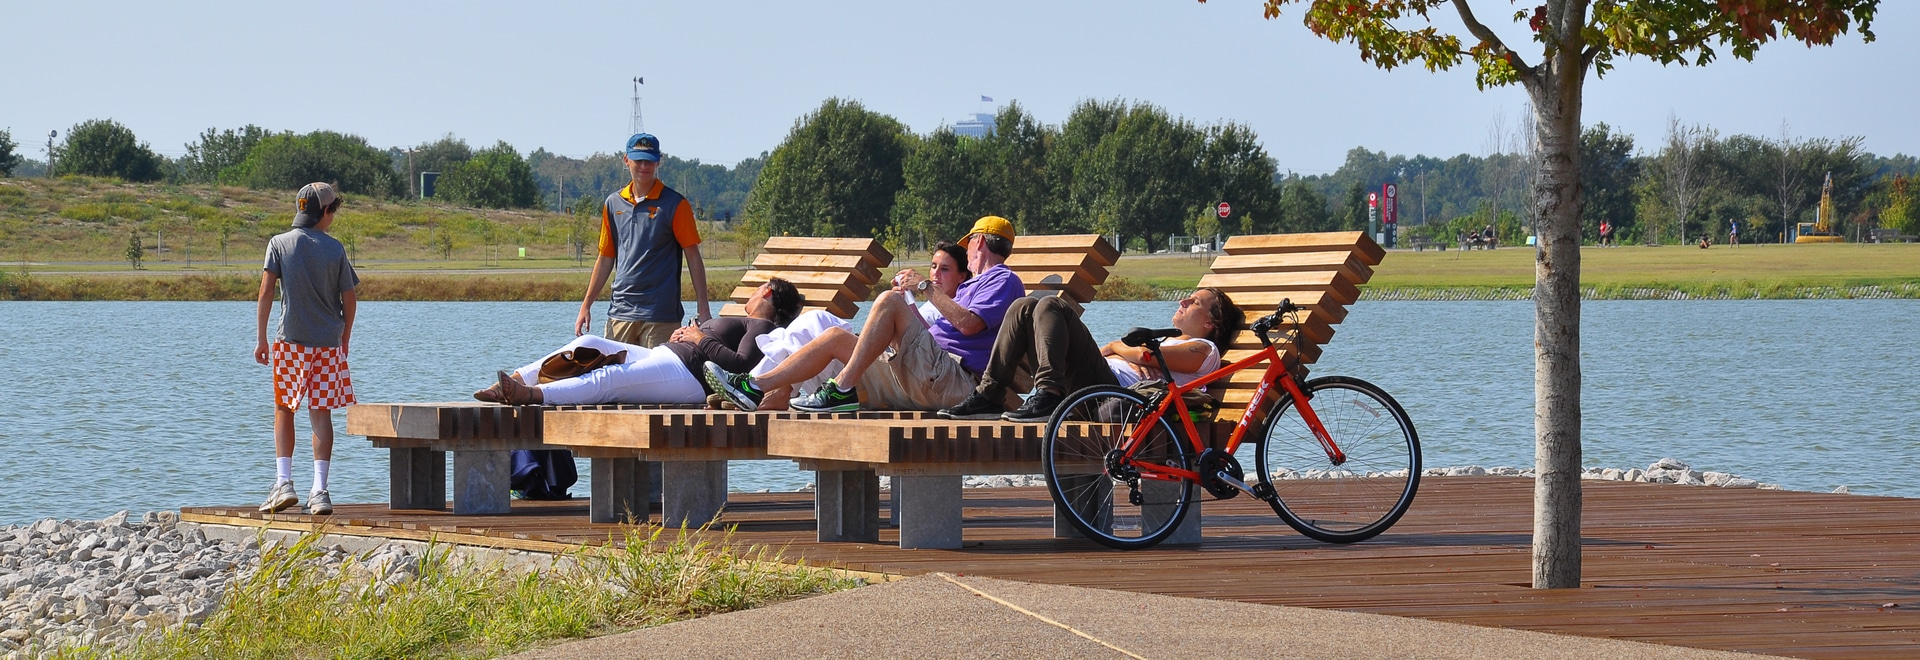 The new R&R Loungers at the waterside of Hyde Lake